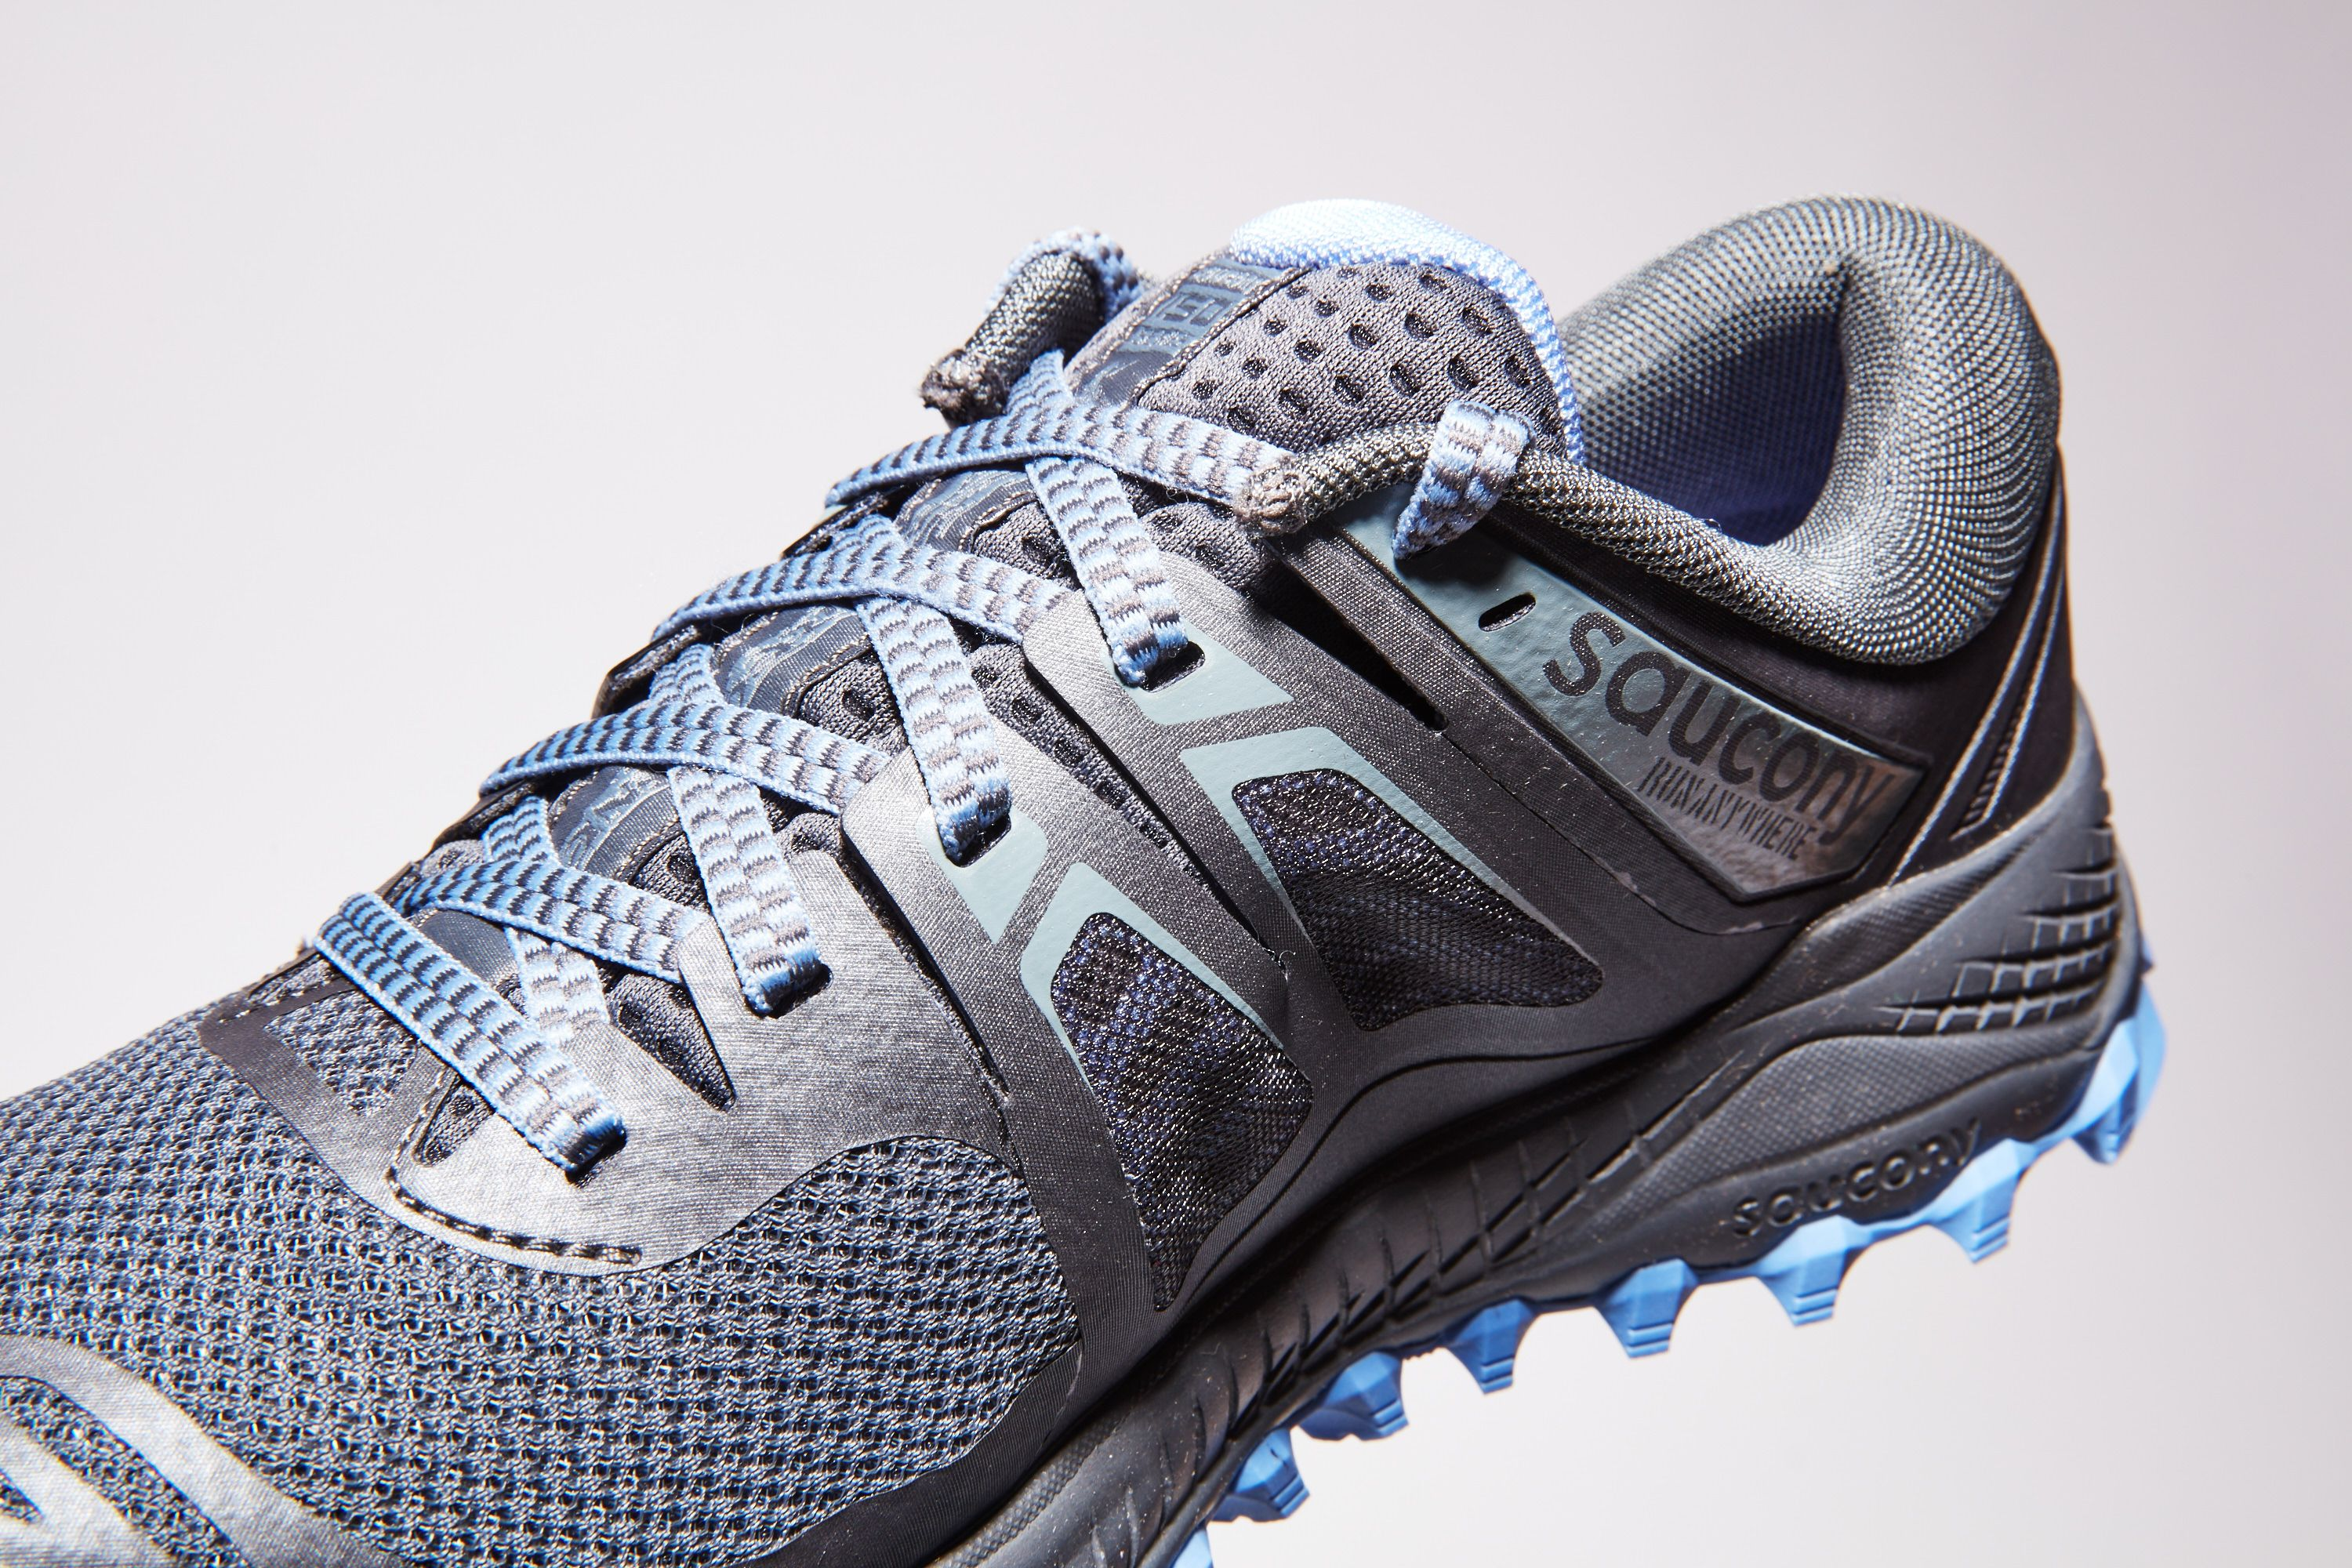 Get Mega Traction From the Saucony Peregrine ISO